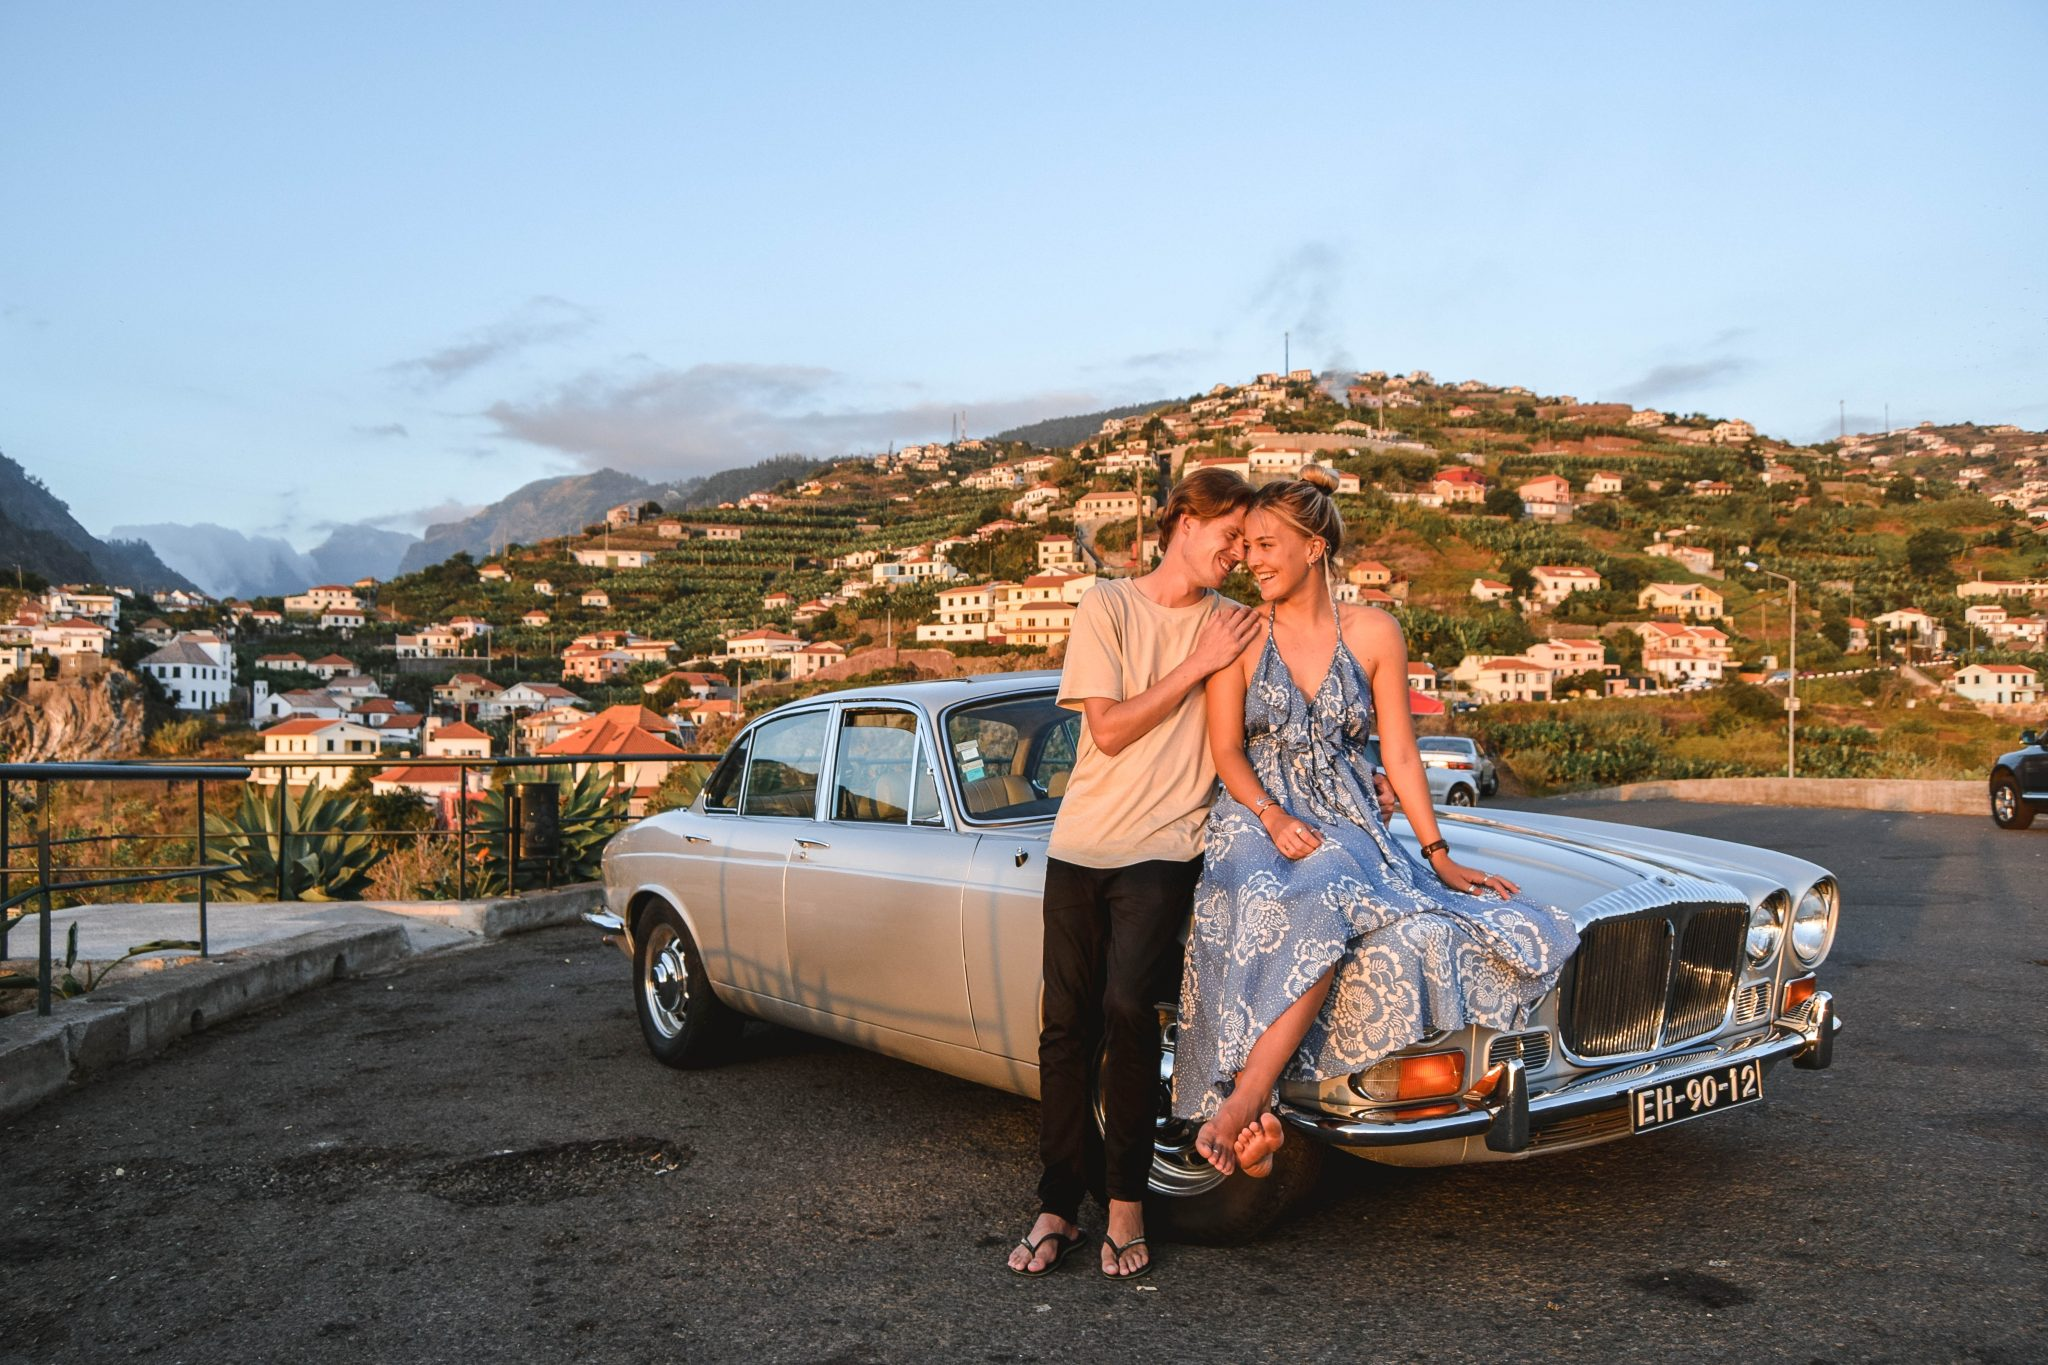 Wanderers & Warriors - Charlie & Lauren UK Travel Couple - Things To Do In Madeira Things To Do - Classic car tour madeira